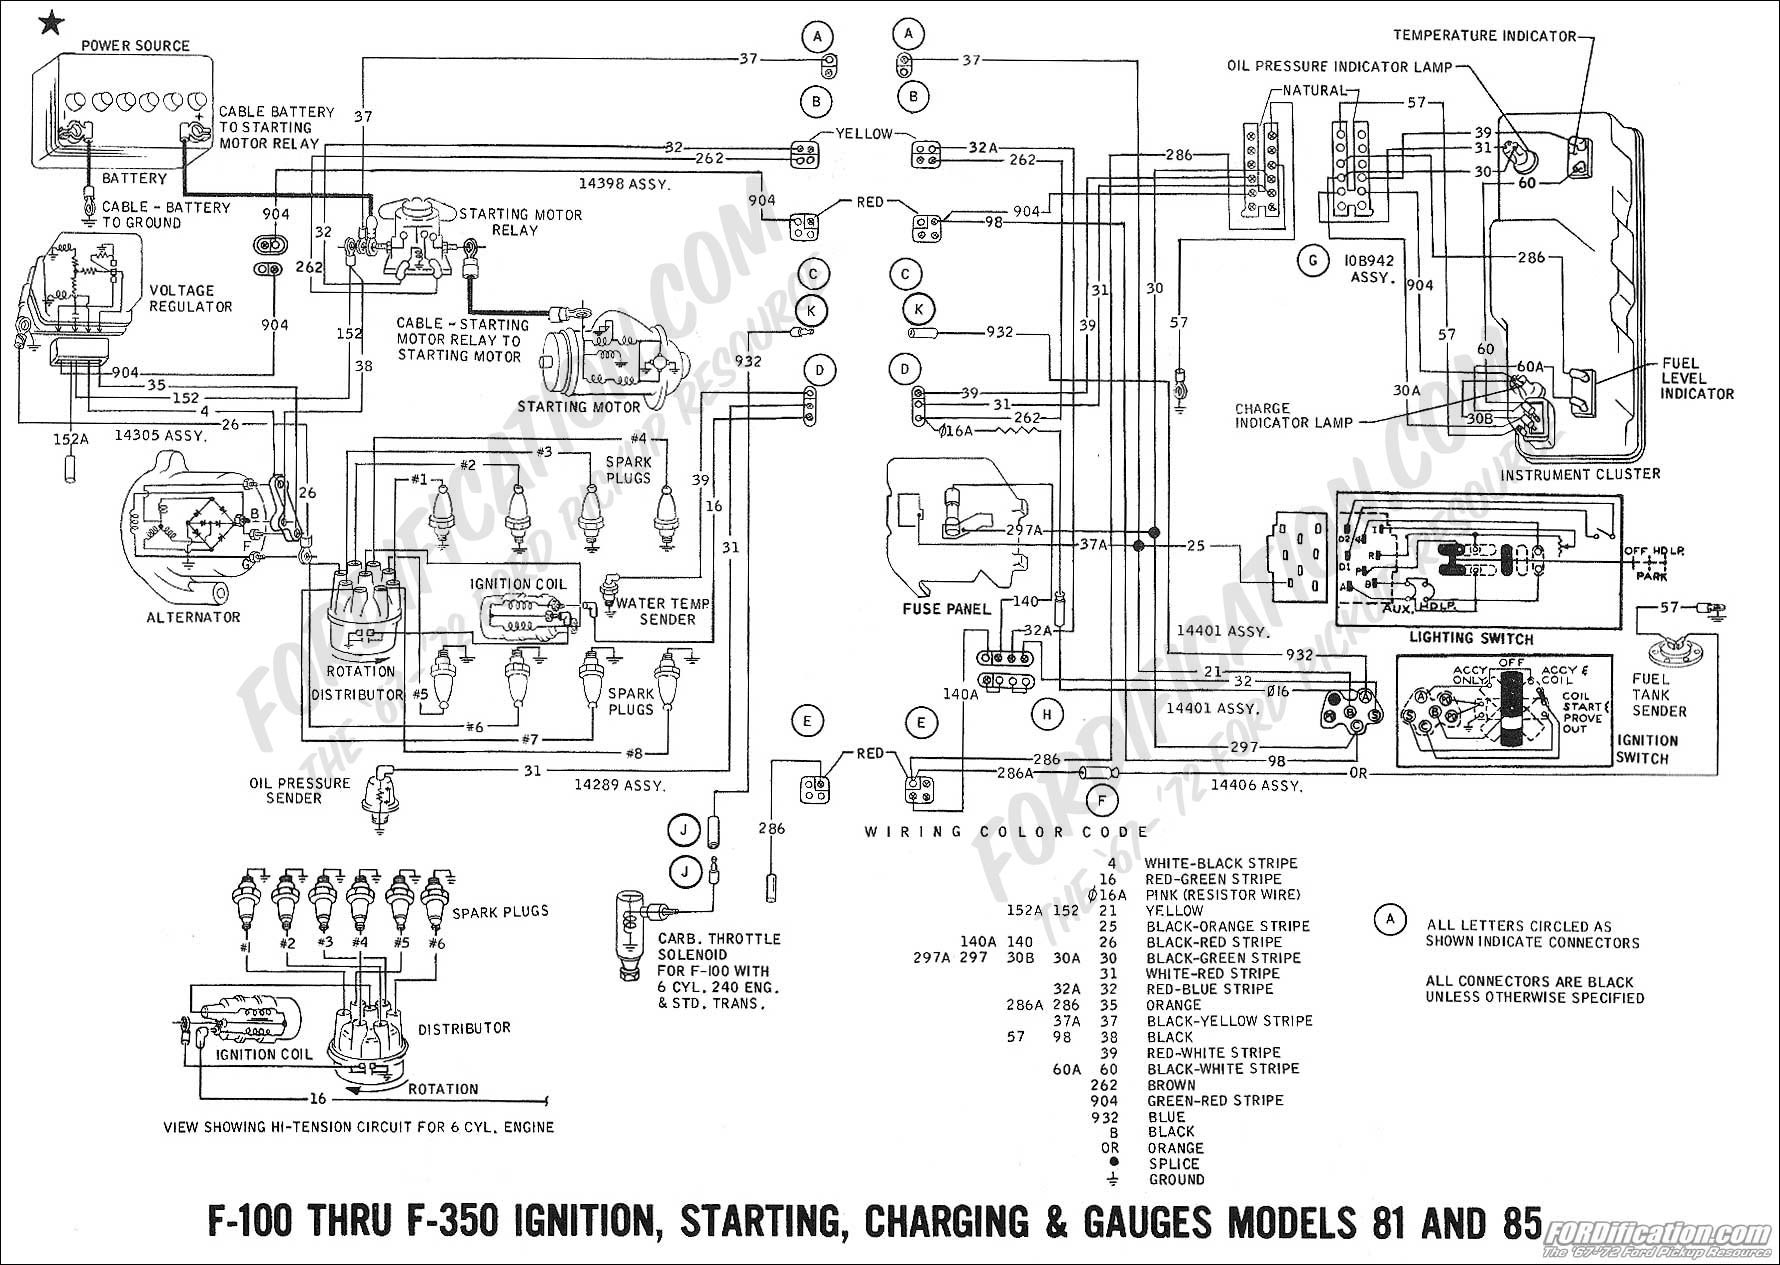 1989 f 150 electrical diagram, 89 f250 engine, 89 f250 steering, 89 f250 forum, 89 f250 headlights, 89 f250 parts, 89 f250 exhaust, 1989 f350 diesel fuel diagram, 89 f250 frame, 1989 f150 fuel system diagram, on 89 ford f250 wiring diagram